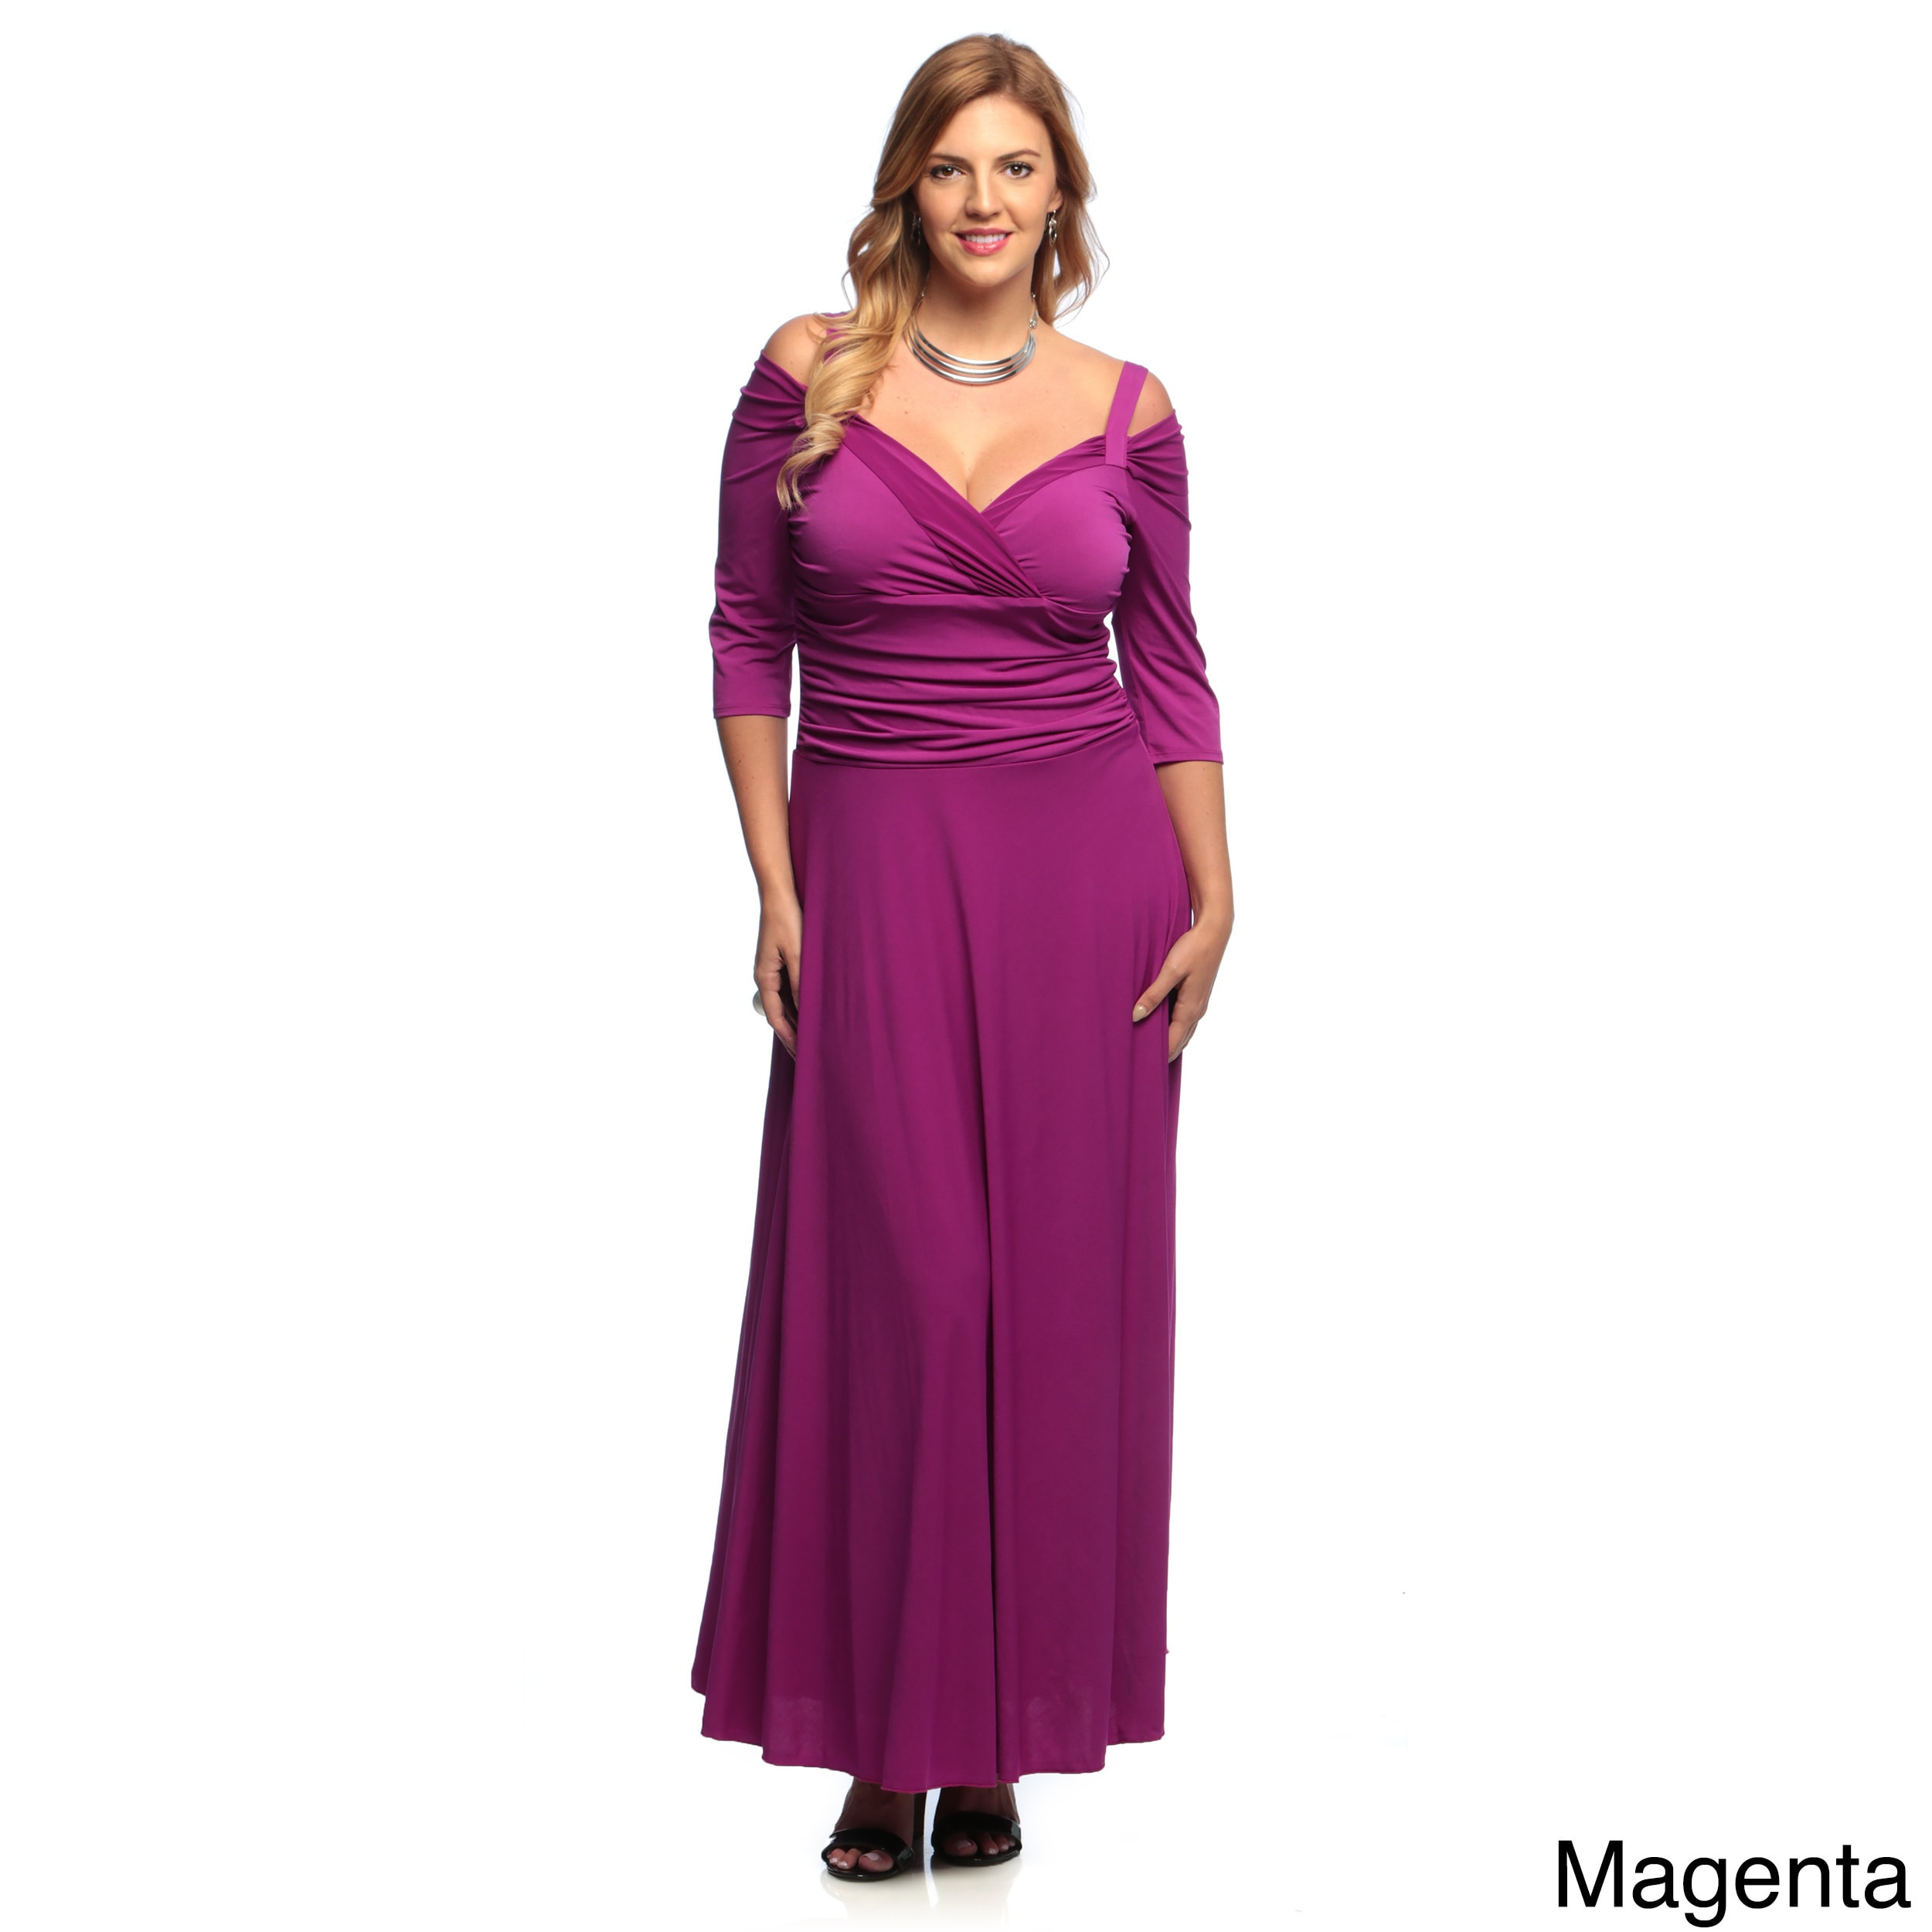 Evanese Women's Plus Size 3/4-sleeve Long Dress (4x - Mag...